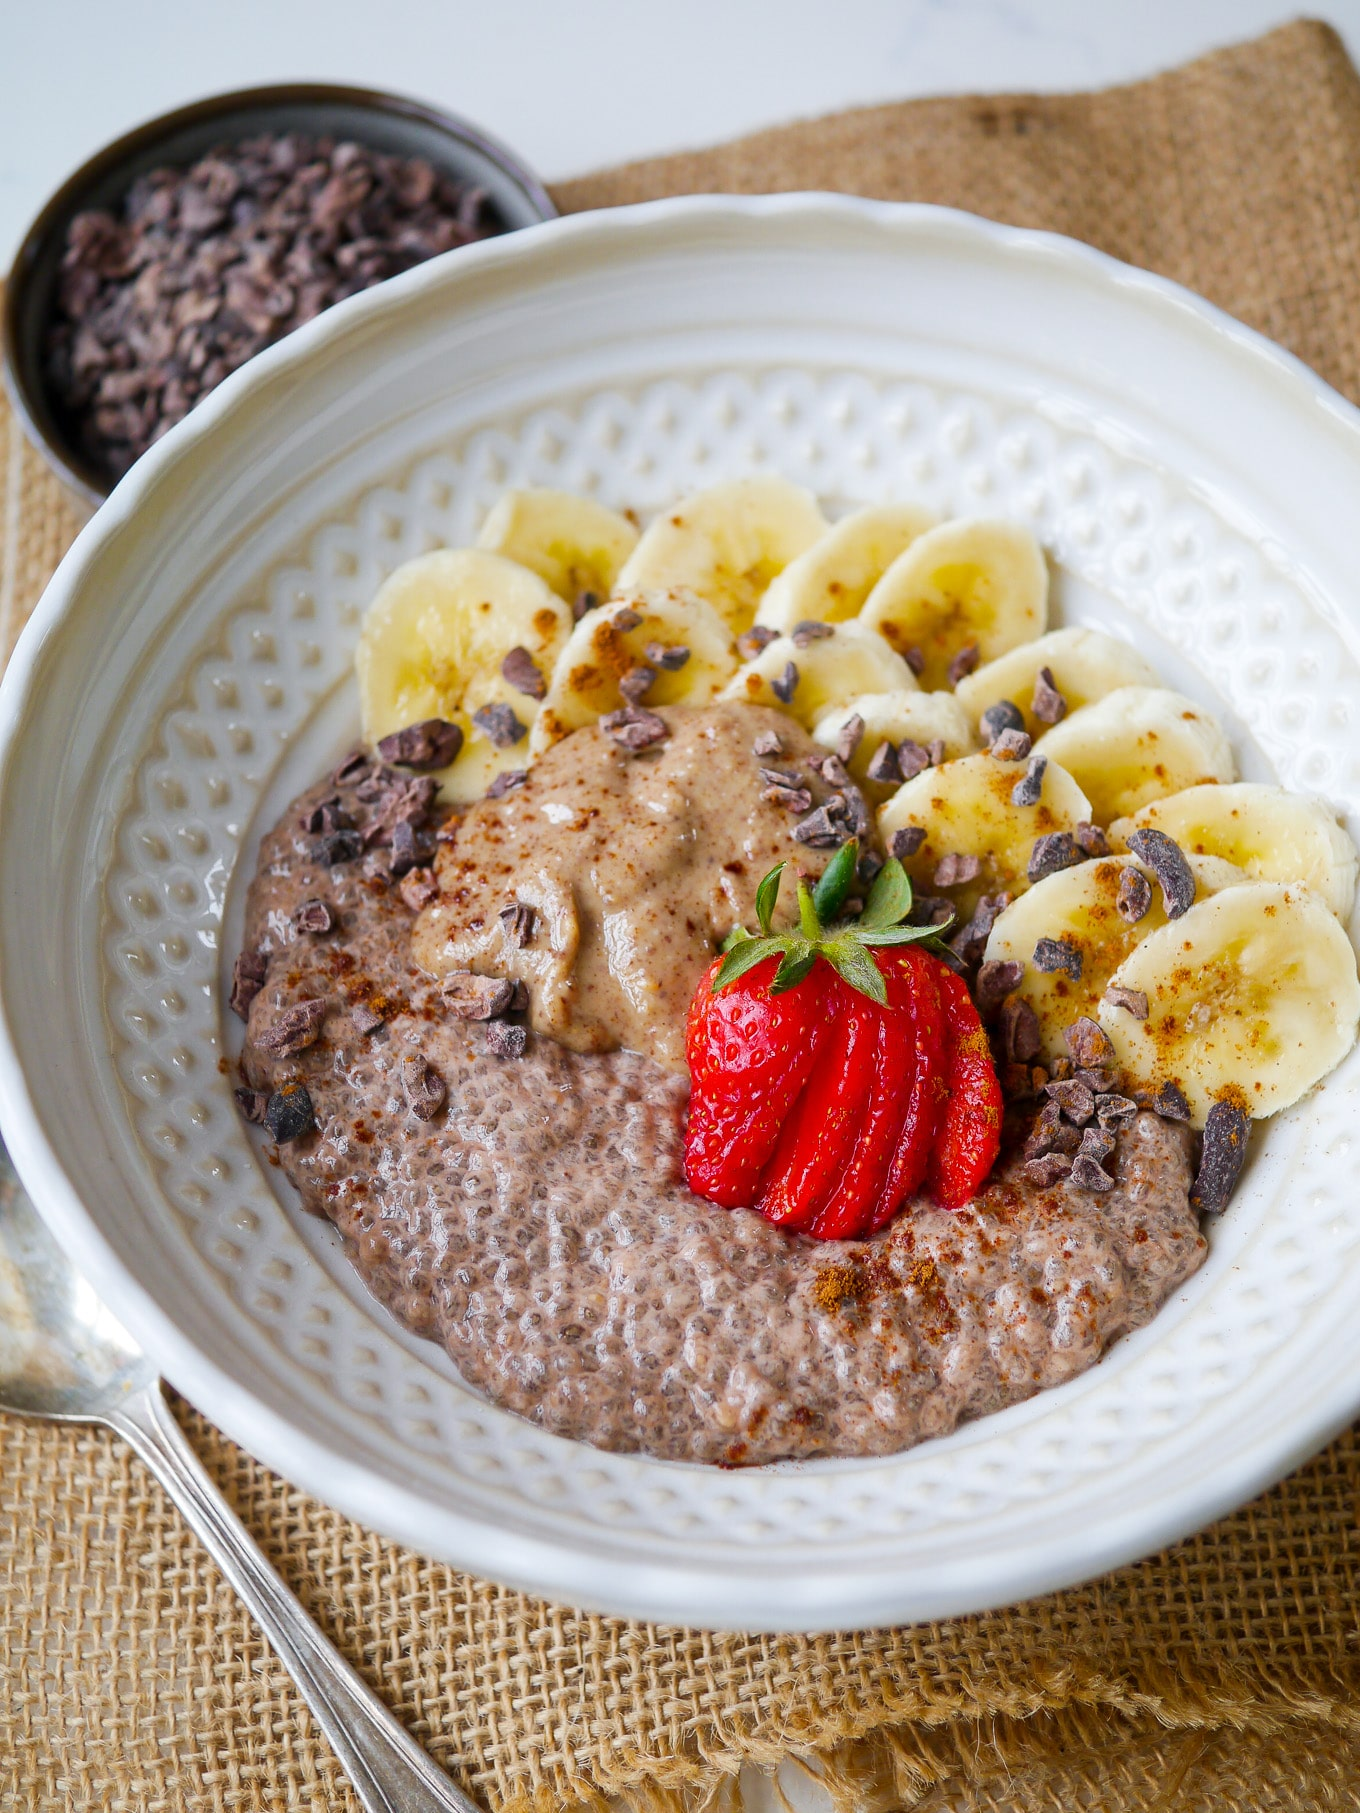 Easy Chunky Monkey Chia Pudding - cacao chia pudding made with creamy nut milk and served with sliced banana, peanut butter and cacao nibs. Yum! #glutenfree #dairyfree #chiapudding